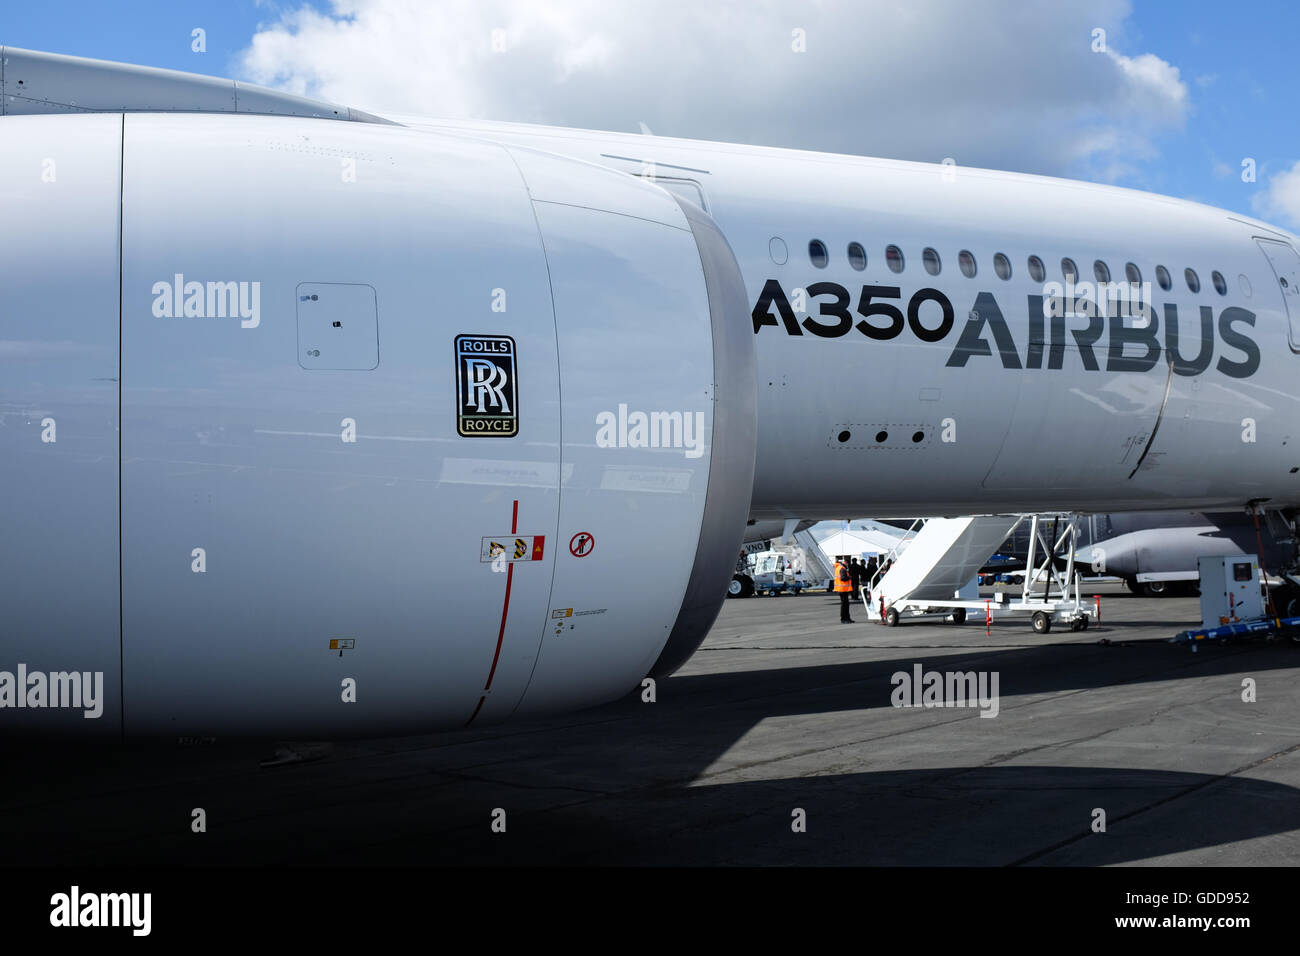 An Airbus A350 with Rolls-Royce engines. - Stock Image